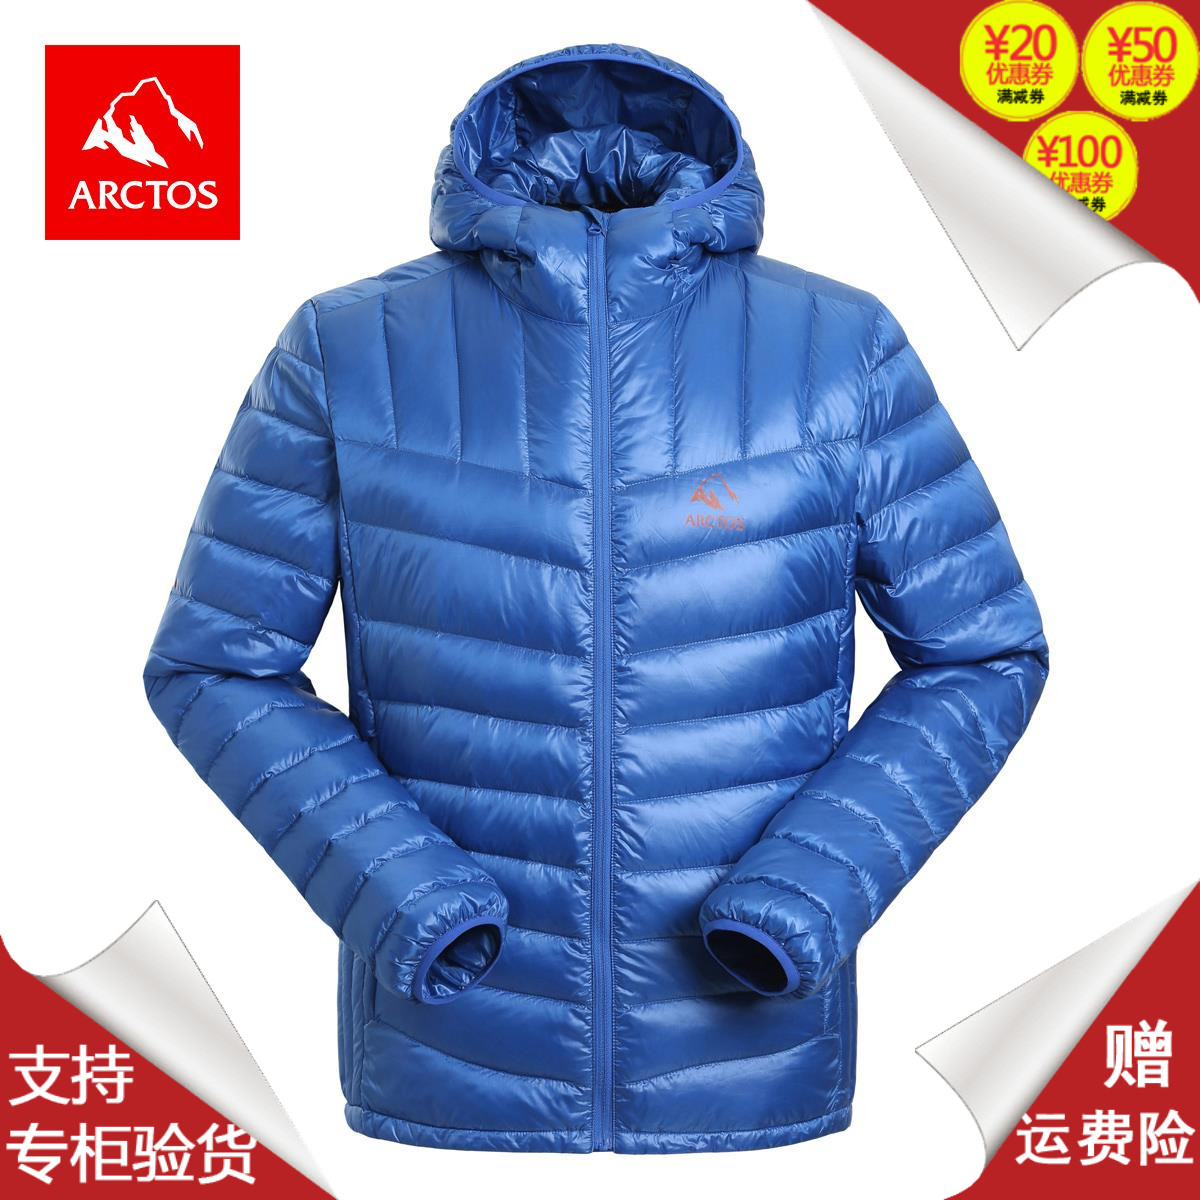 [The goods stop production and no stock]Arctos polar star outdoor down jacket new autumn and winter authentic warm waterproof male down jacket AGDA21162